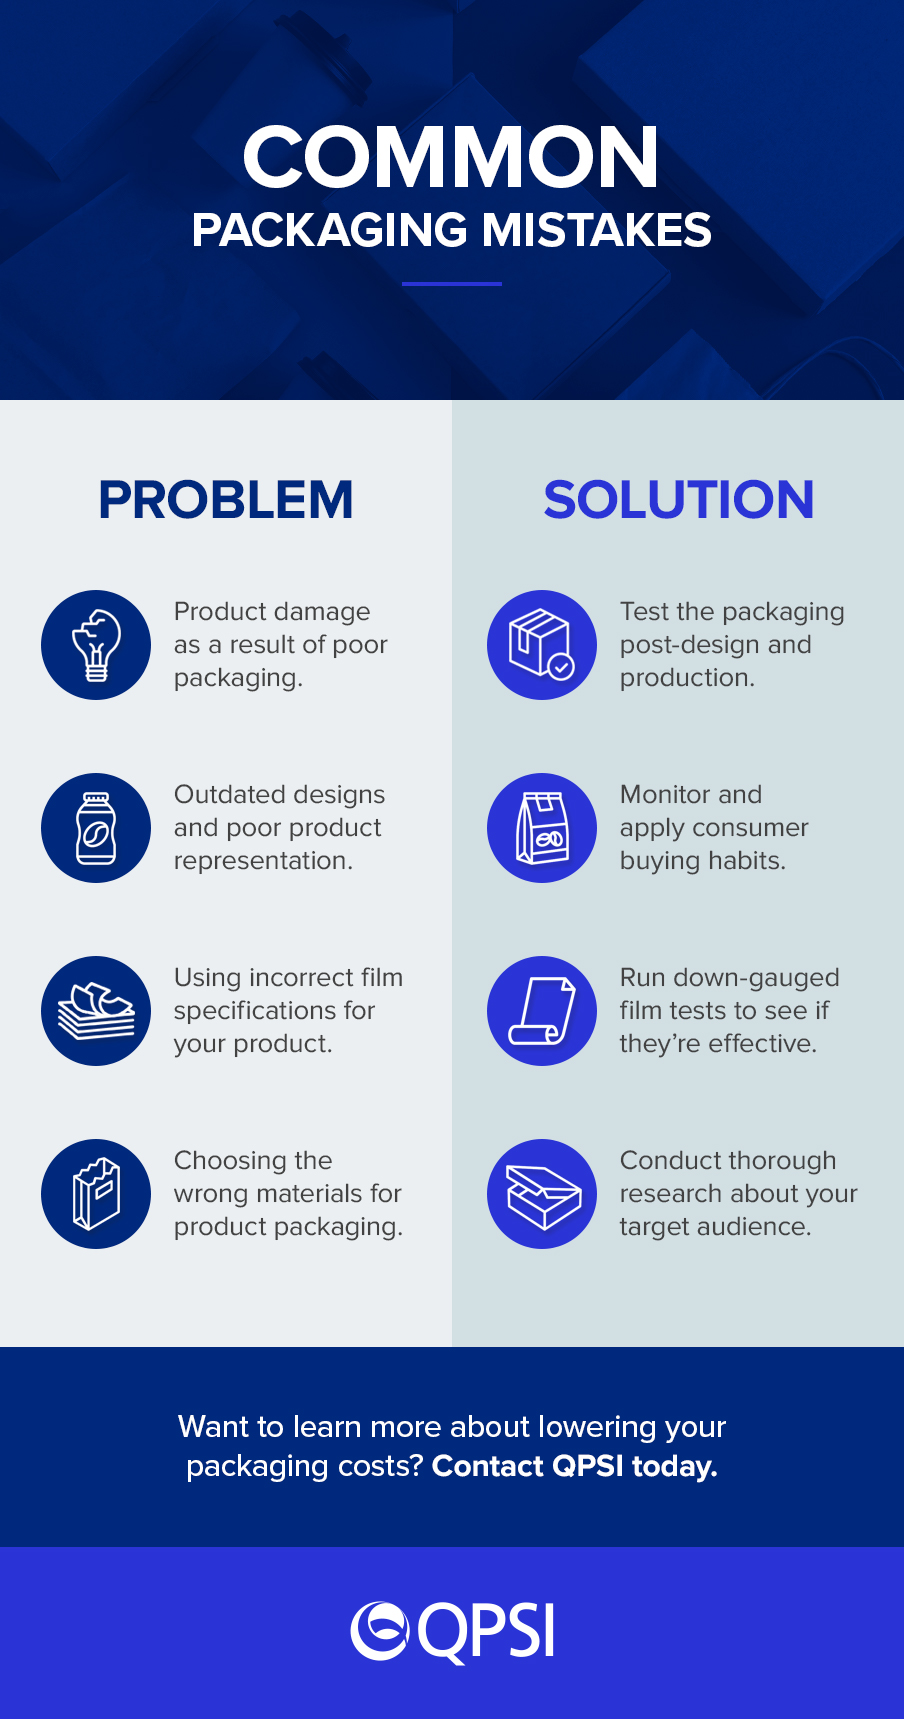 Common Packaging Mistakes and Solutions Infographic